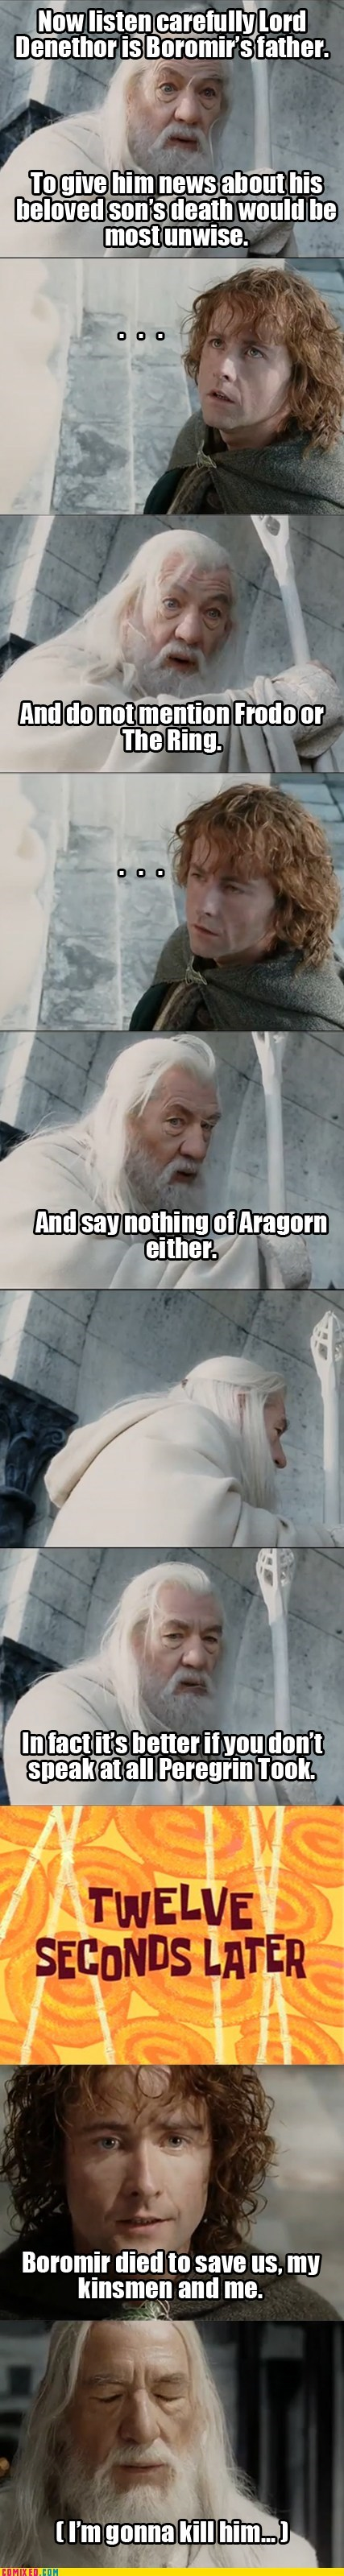 From the Movies,gandalf,Lord of the Rings,u mad